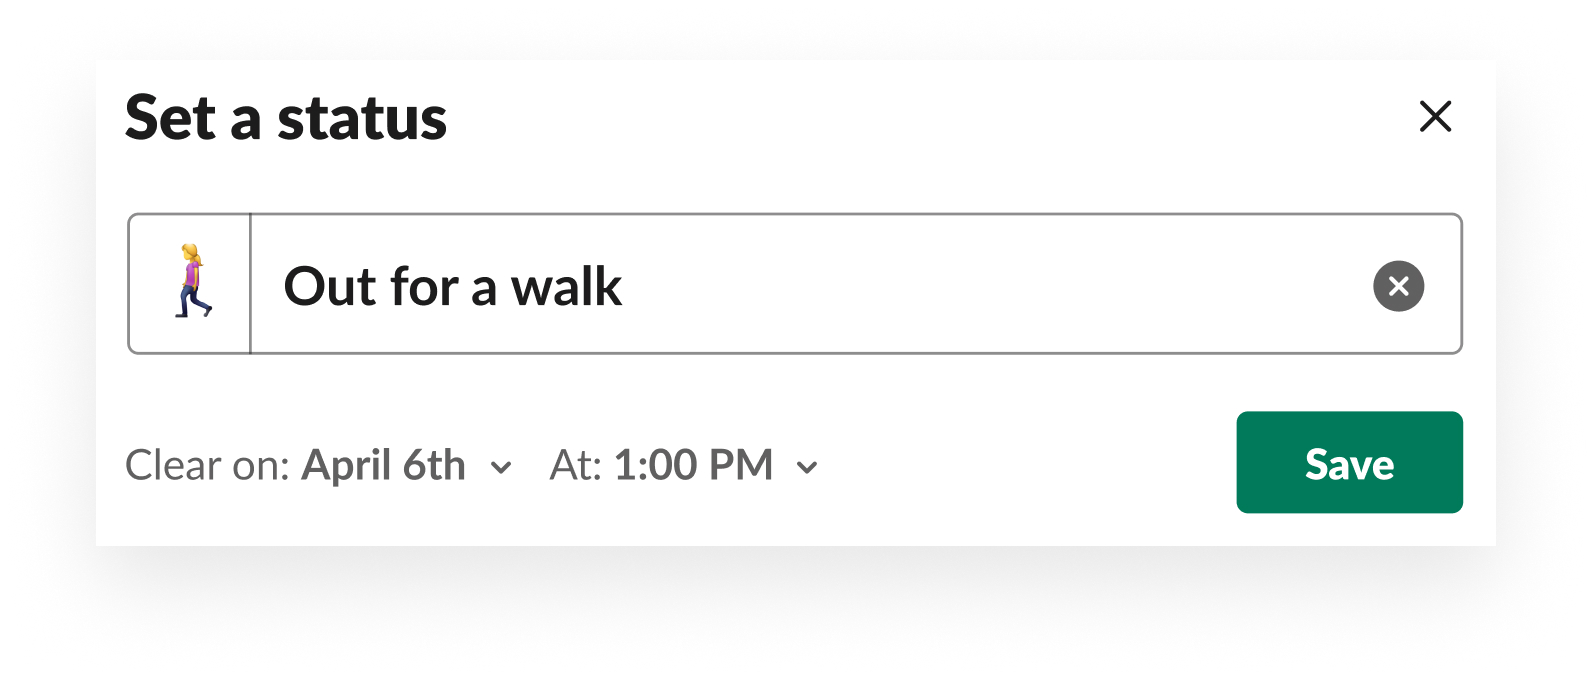 Example of how to set your status in Slack